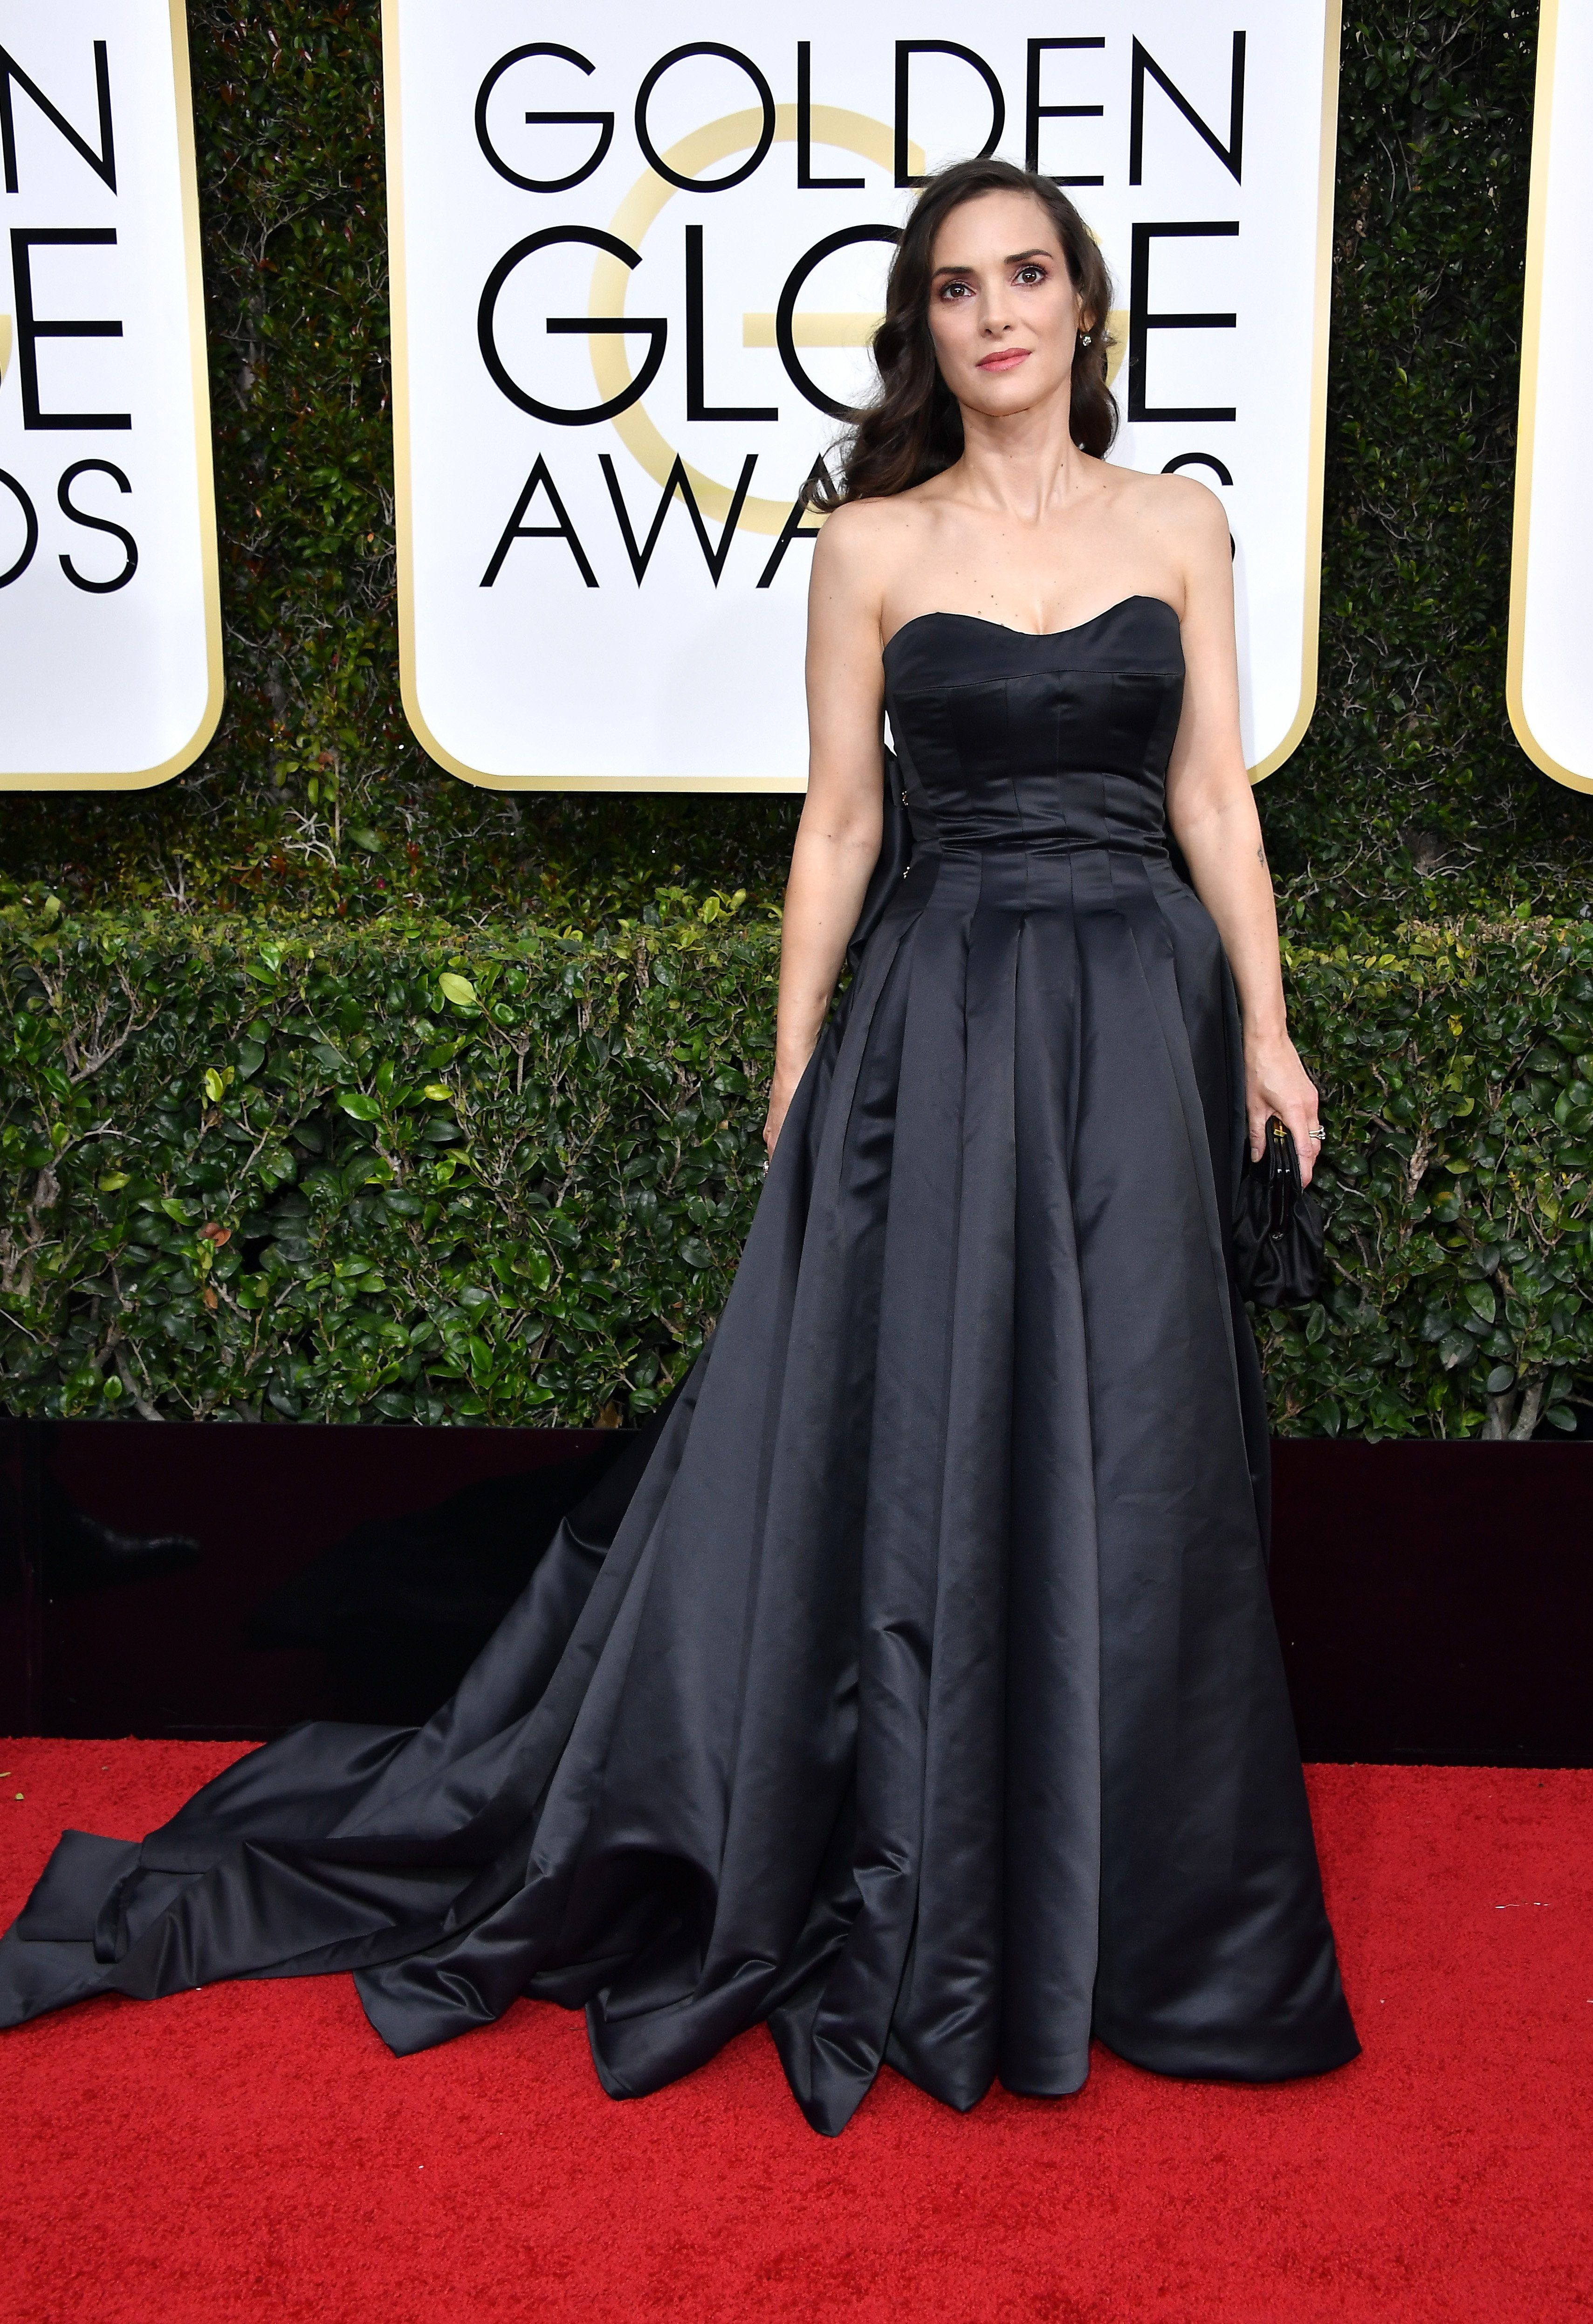 Golden globes fashionulive from the red carpet winona ryder